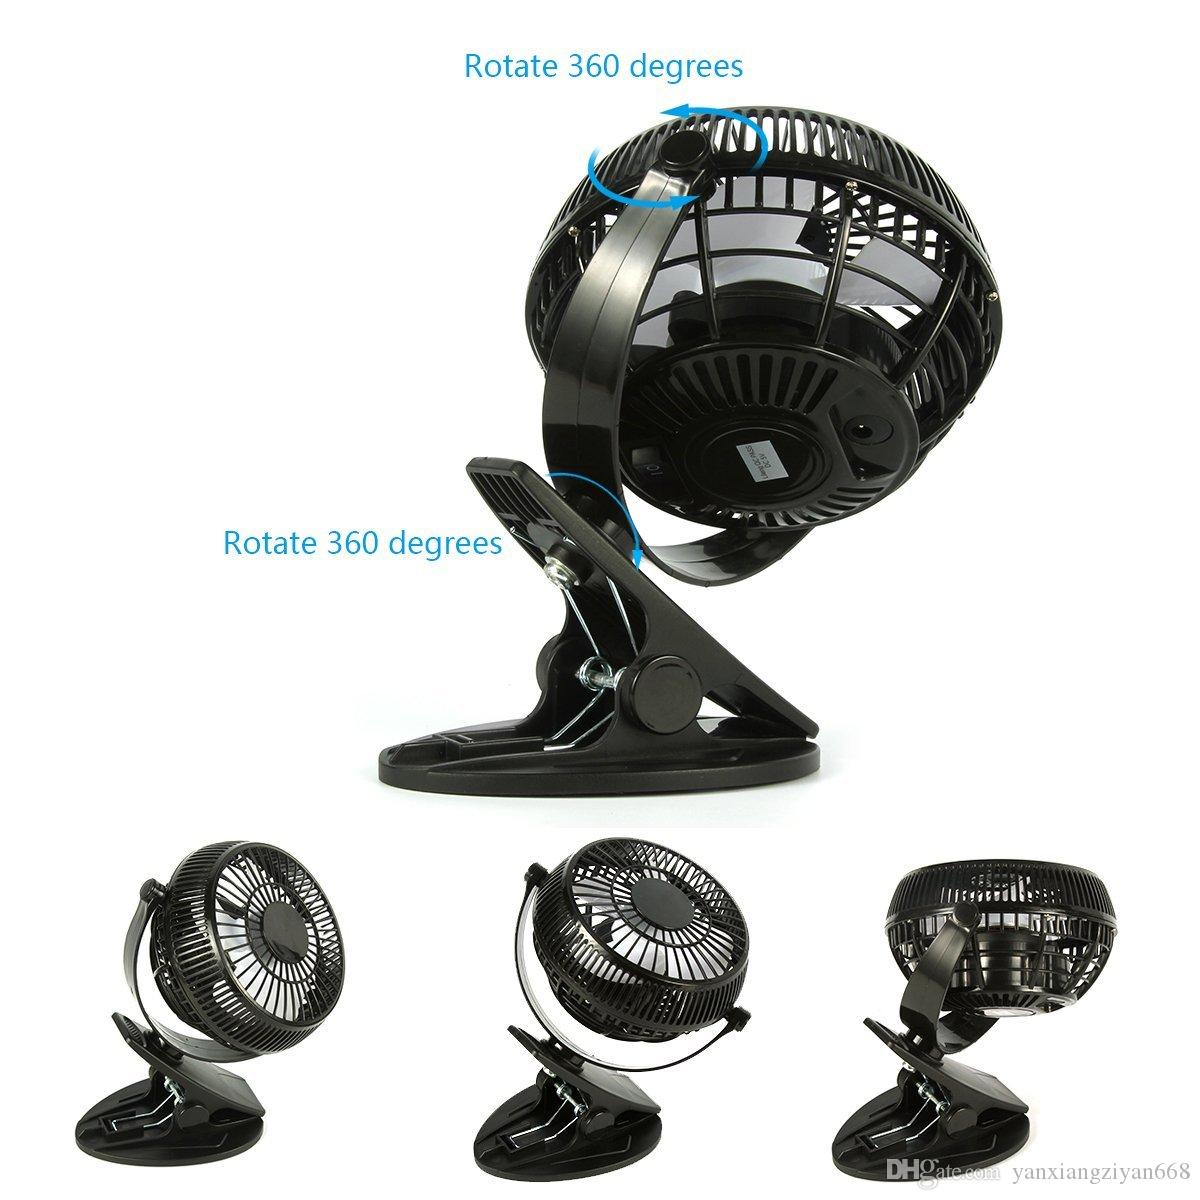 Clip on Mini Desk USB Fan, 2-Mode Speed 360 Degree Rotation Silent Cooling Cooler Electric Fan for Home Office Baby Car Laptop YX-FS-1